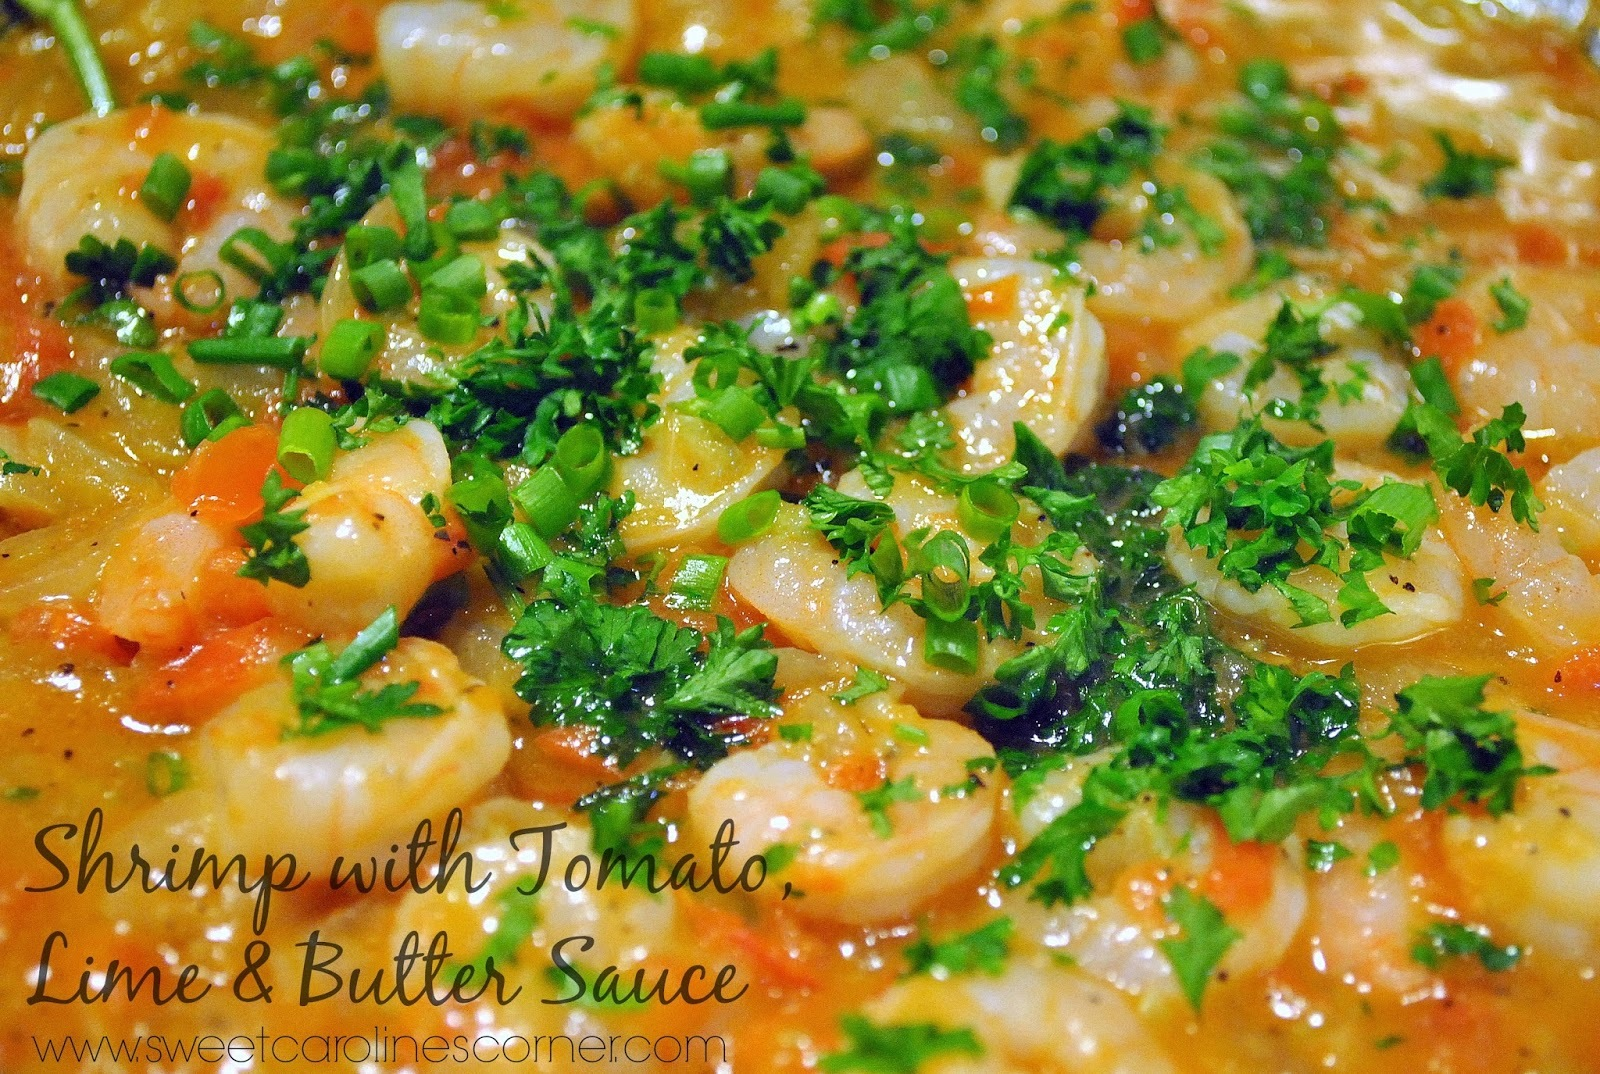 Shrimp with Tomato, Lime & Butter Sauce